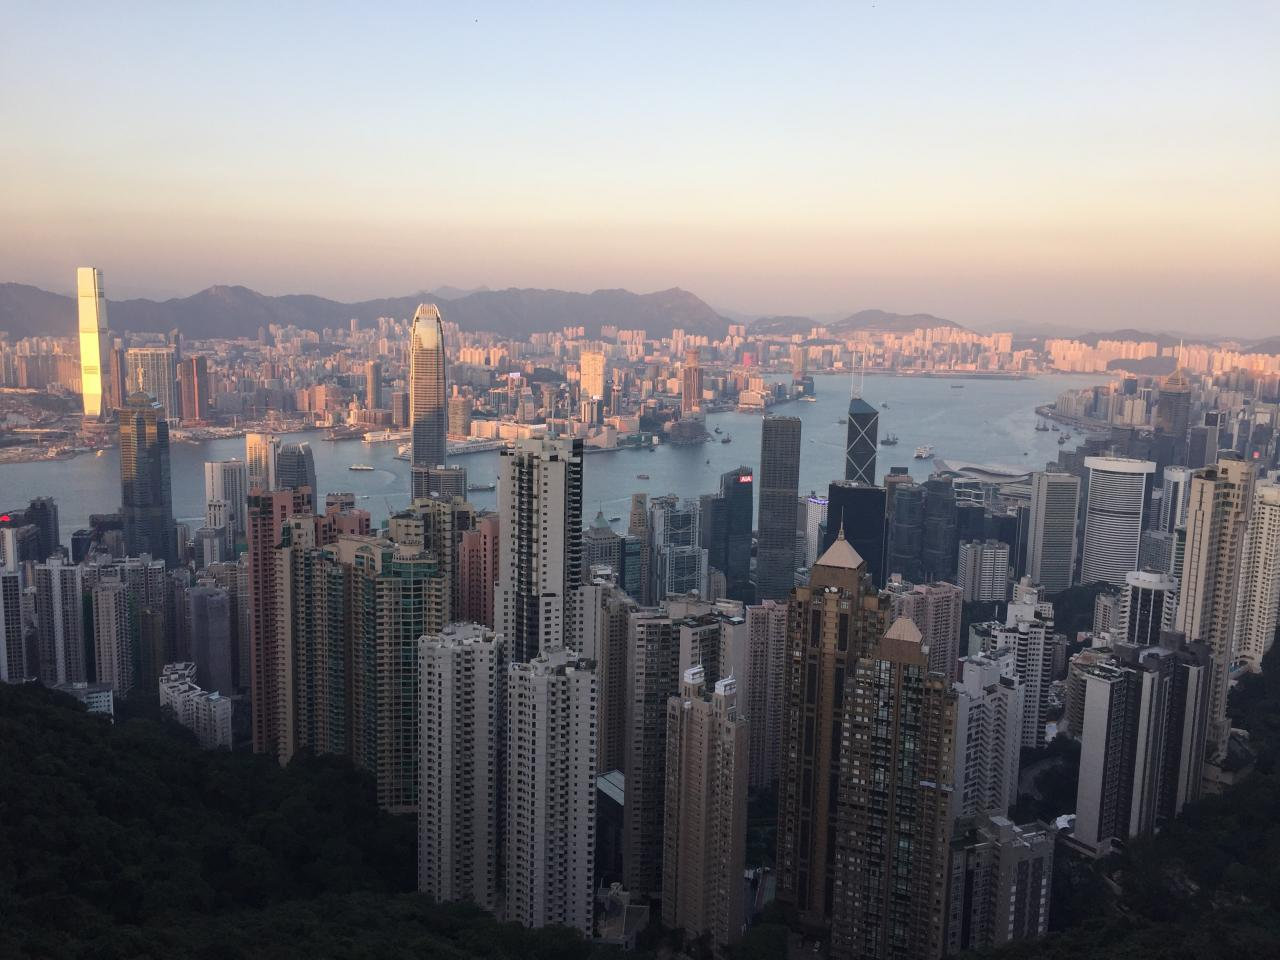 Exotic destination, food capital, financial hub and expats' dream... Hong Kong is definitely one of the most popular destinations in the world. It is a city of many faces and exploring them requires a